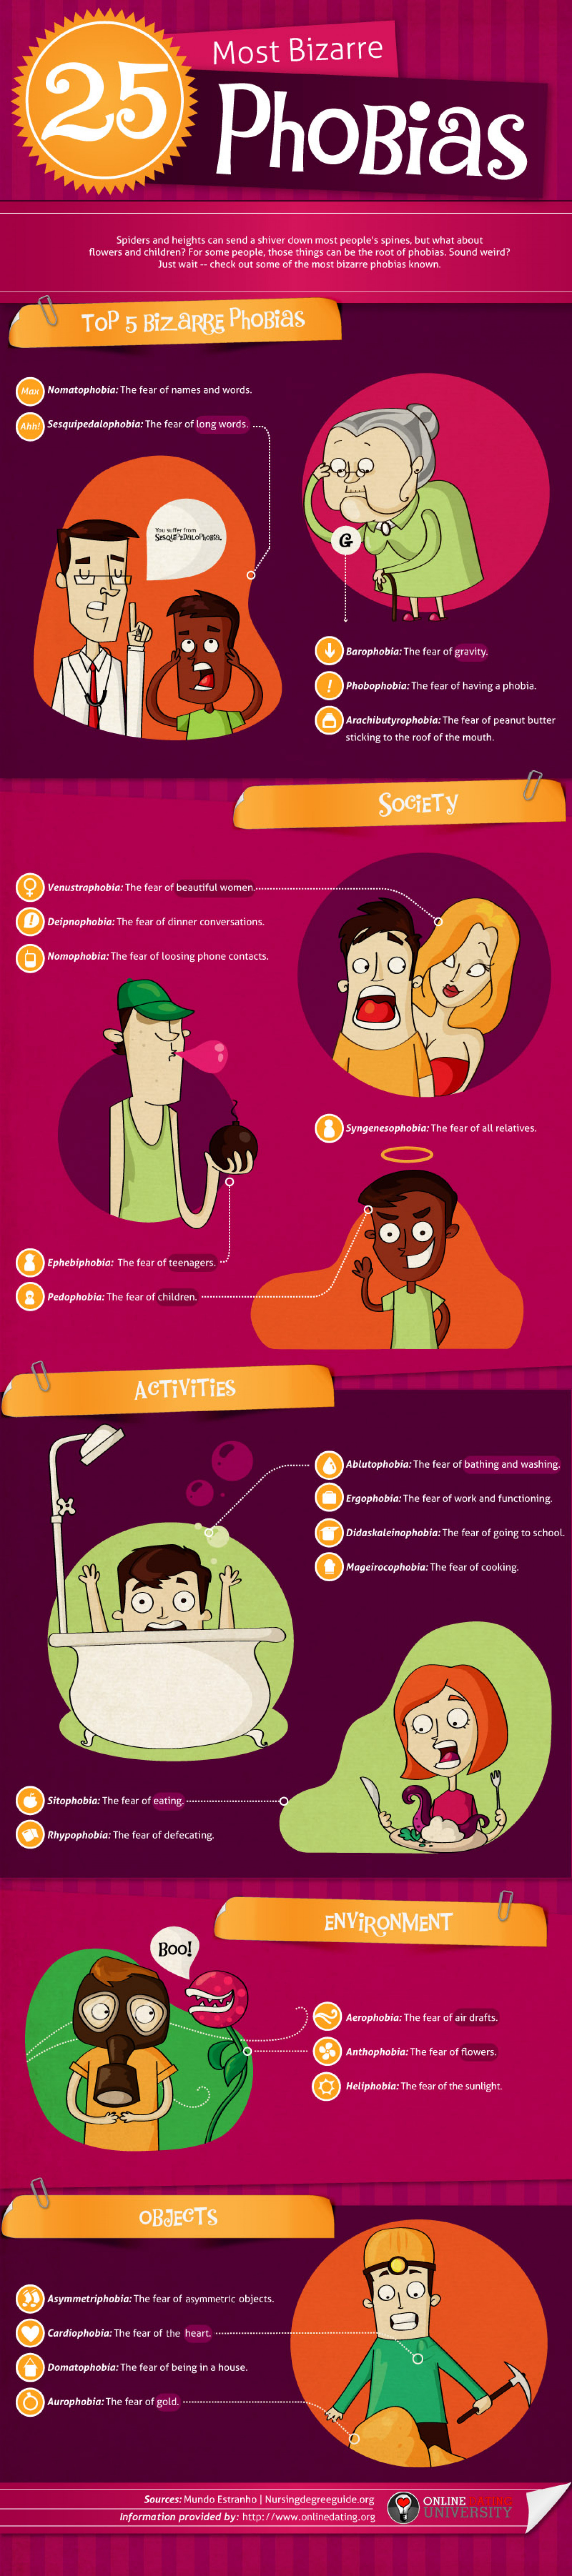 Strange Phobias Your Significant Other Might Have Infographic